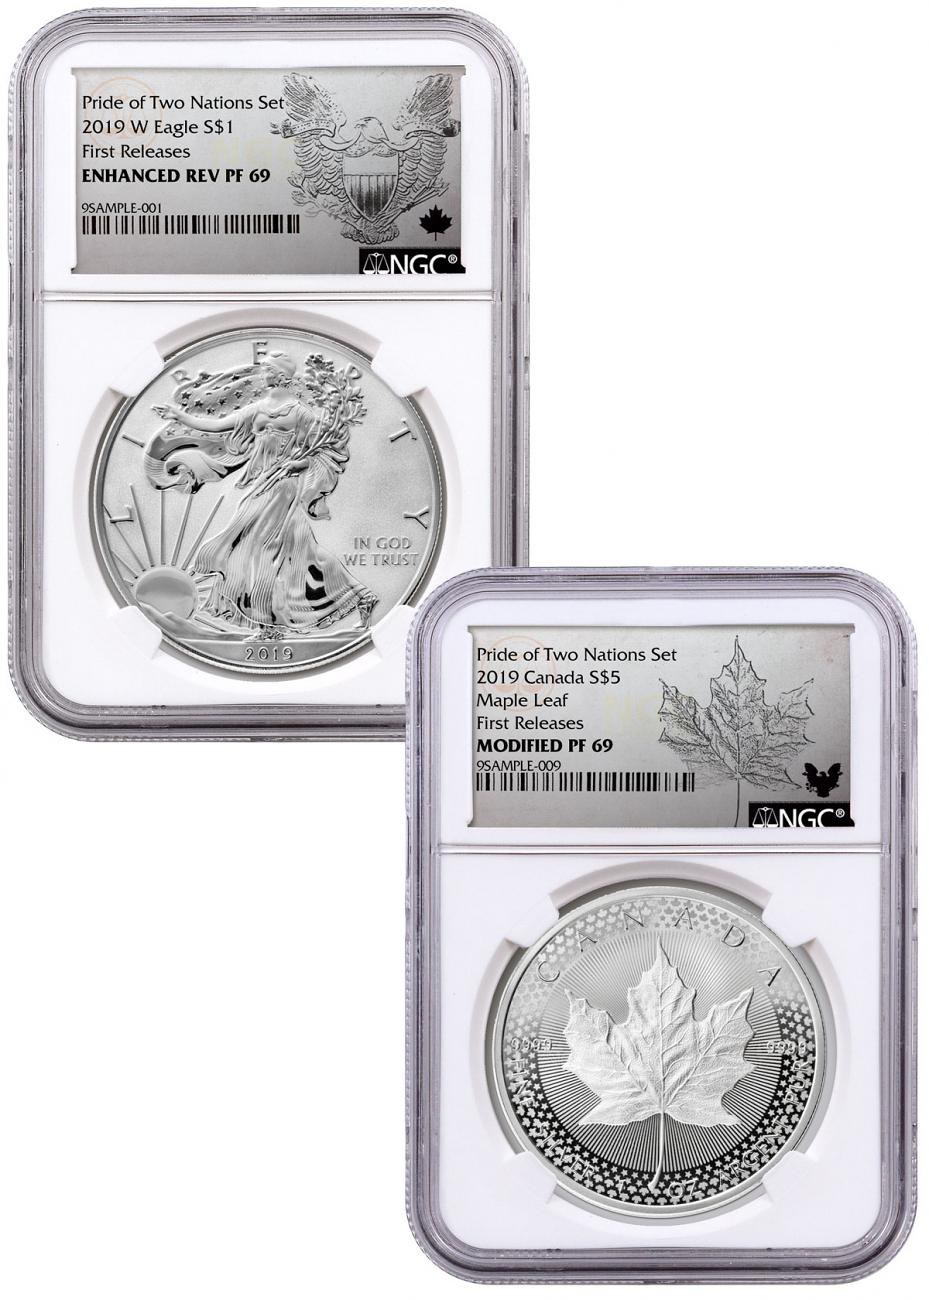 2019 United States & Canada 1 oz Silver Eagle & Maple Leaf - Pride of Two Nations 2-Coin Set NGC PF69 FR Exclusive Eagle & Maple Labels with OGP